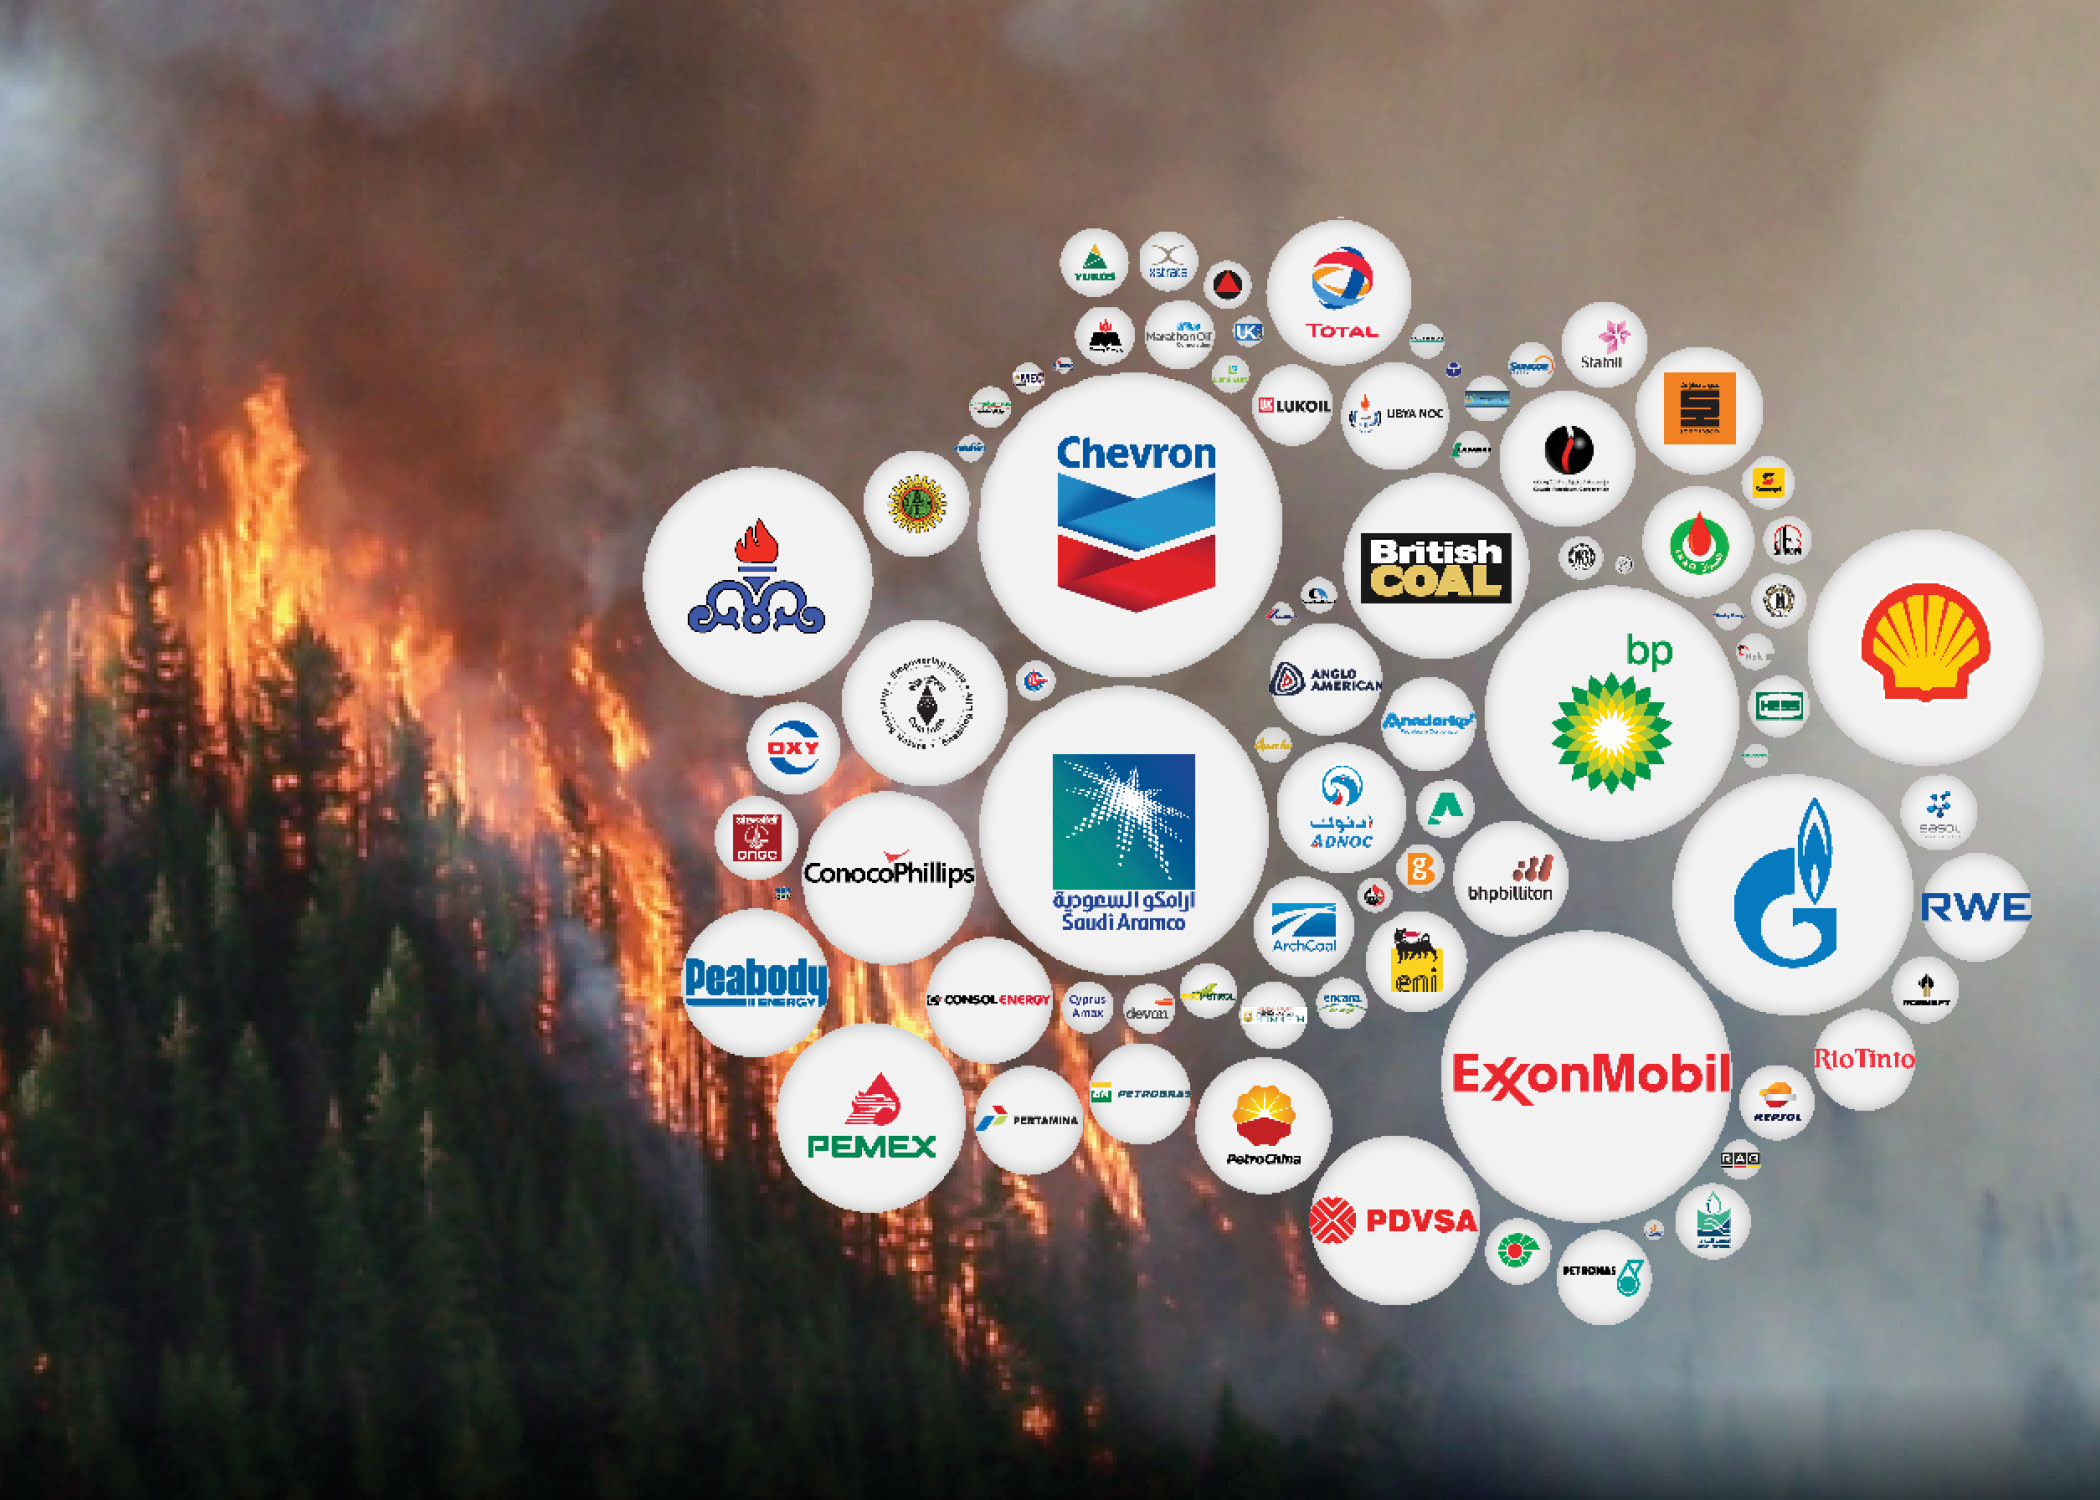 Fossil fuel companies and climate change